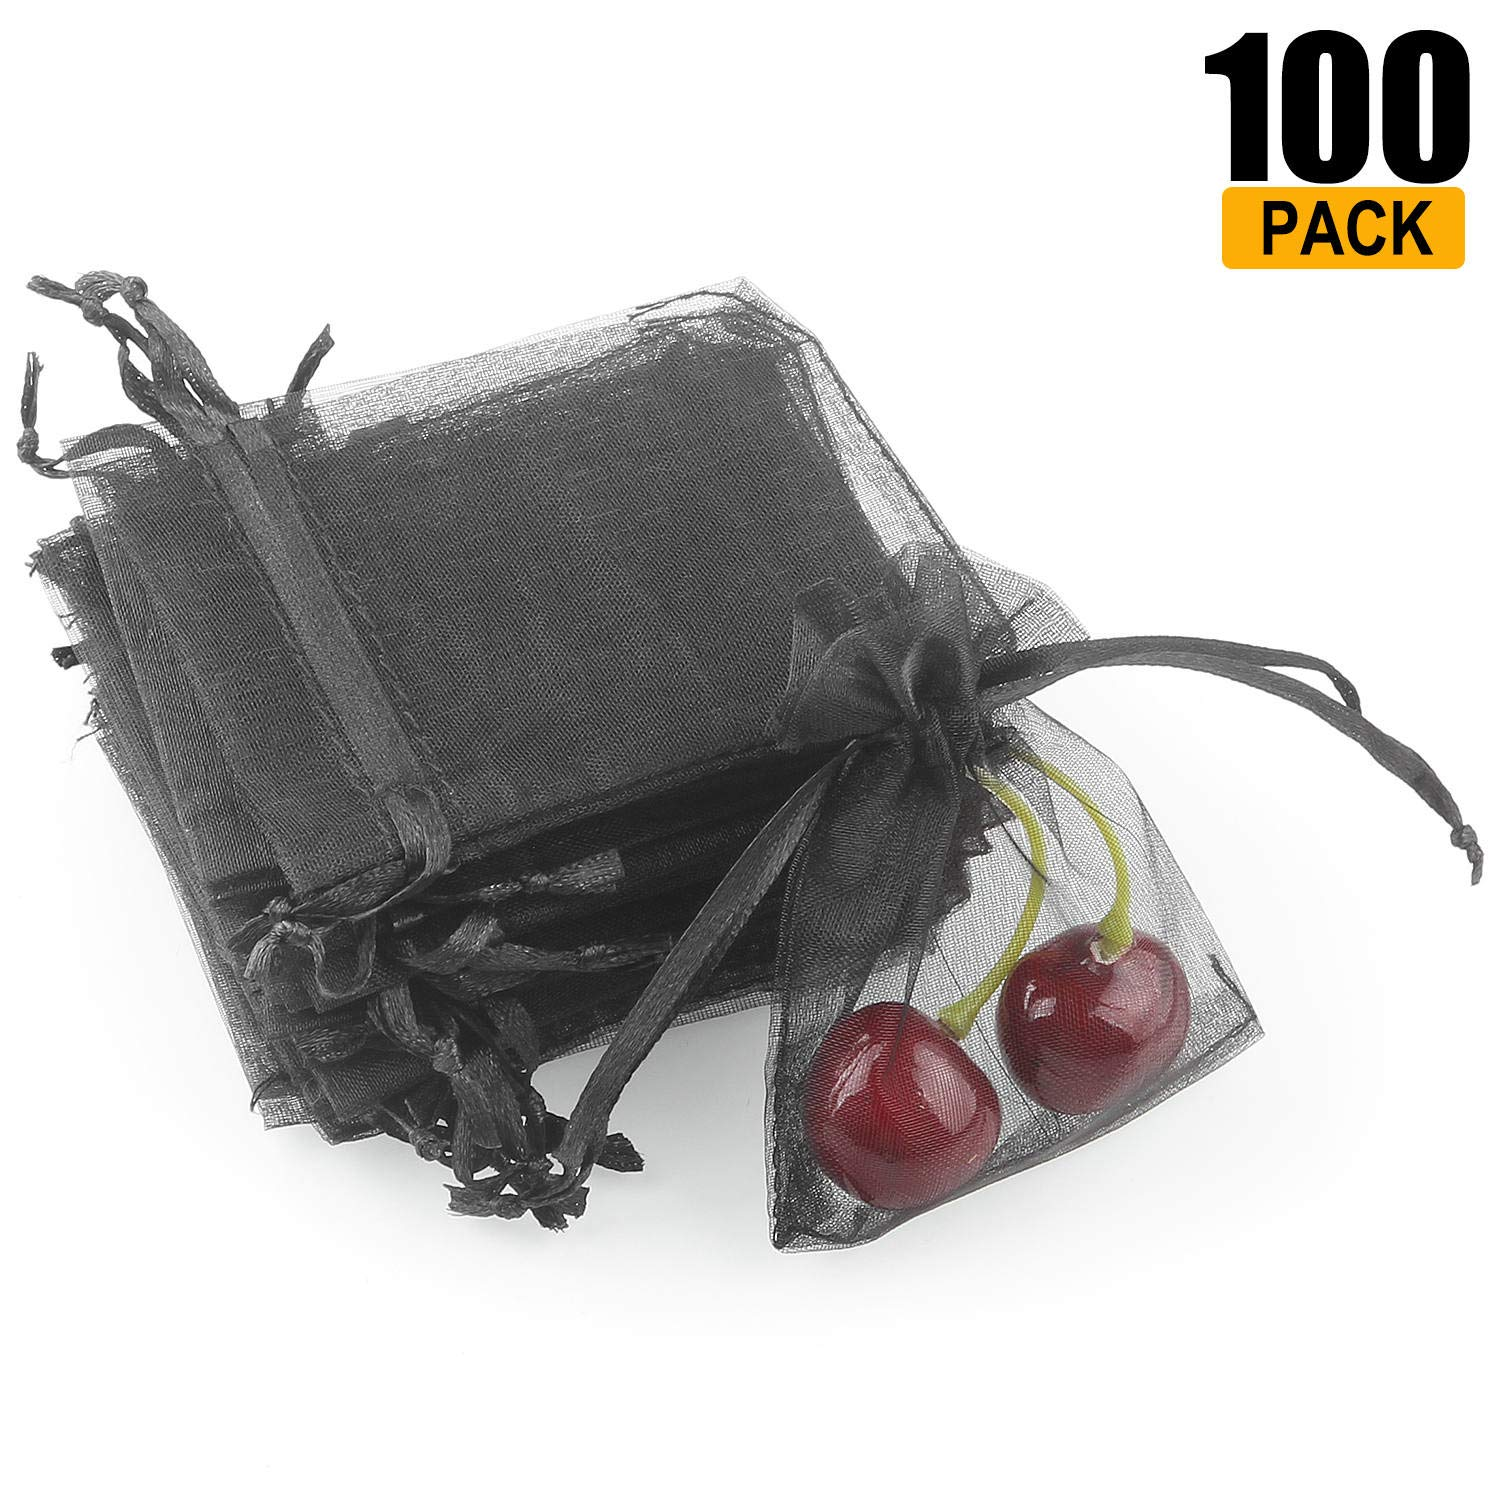 100 Pack Wedding Favour Gift Bags - LANIAKEA 9 X 7 CM Party Bags Organza Small Drawstring Pouch - Black SilkRoad Direct